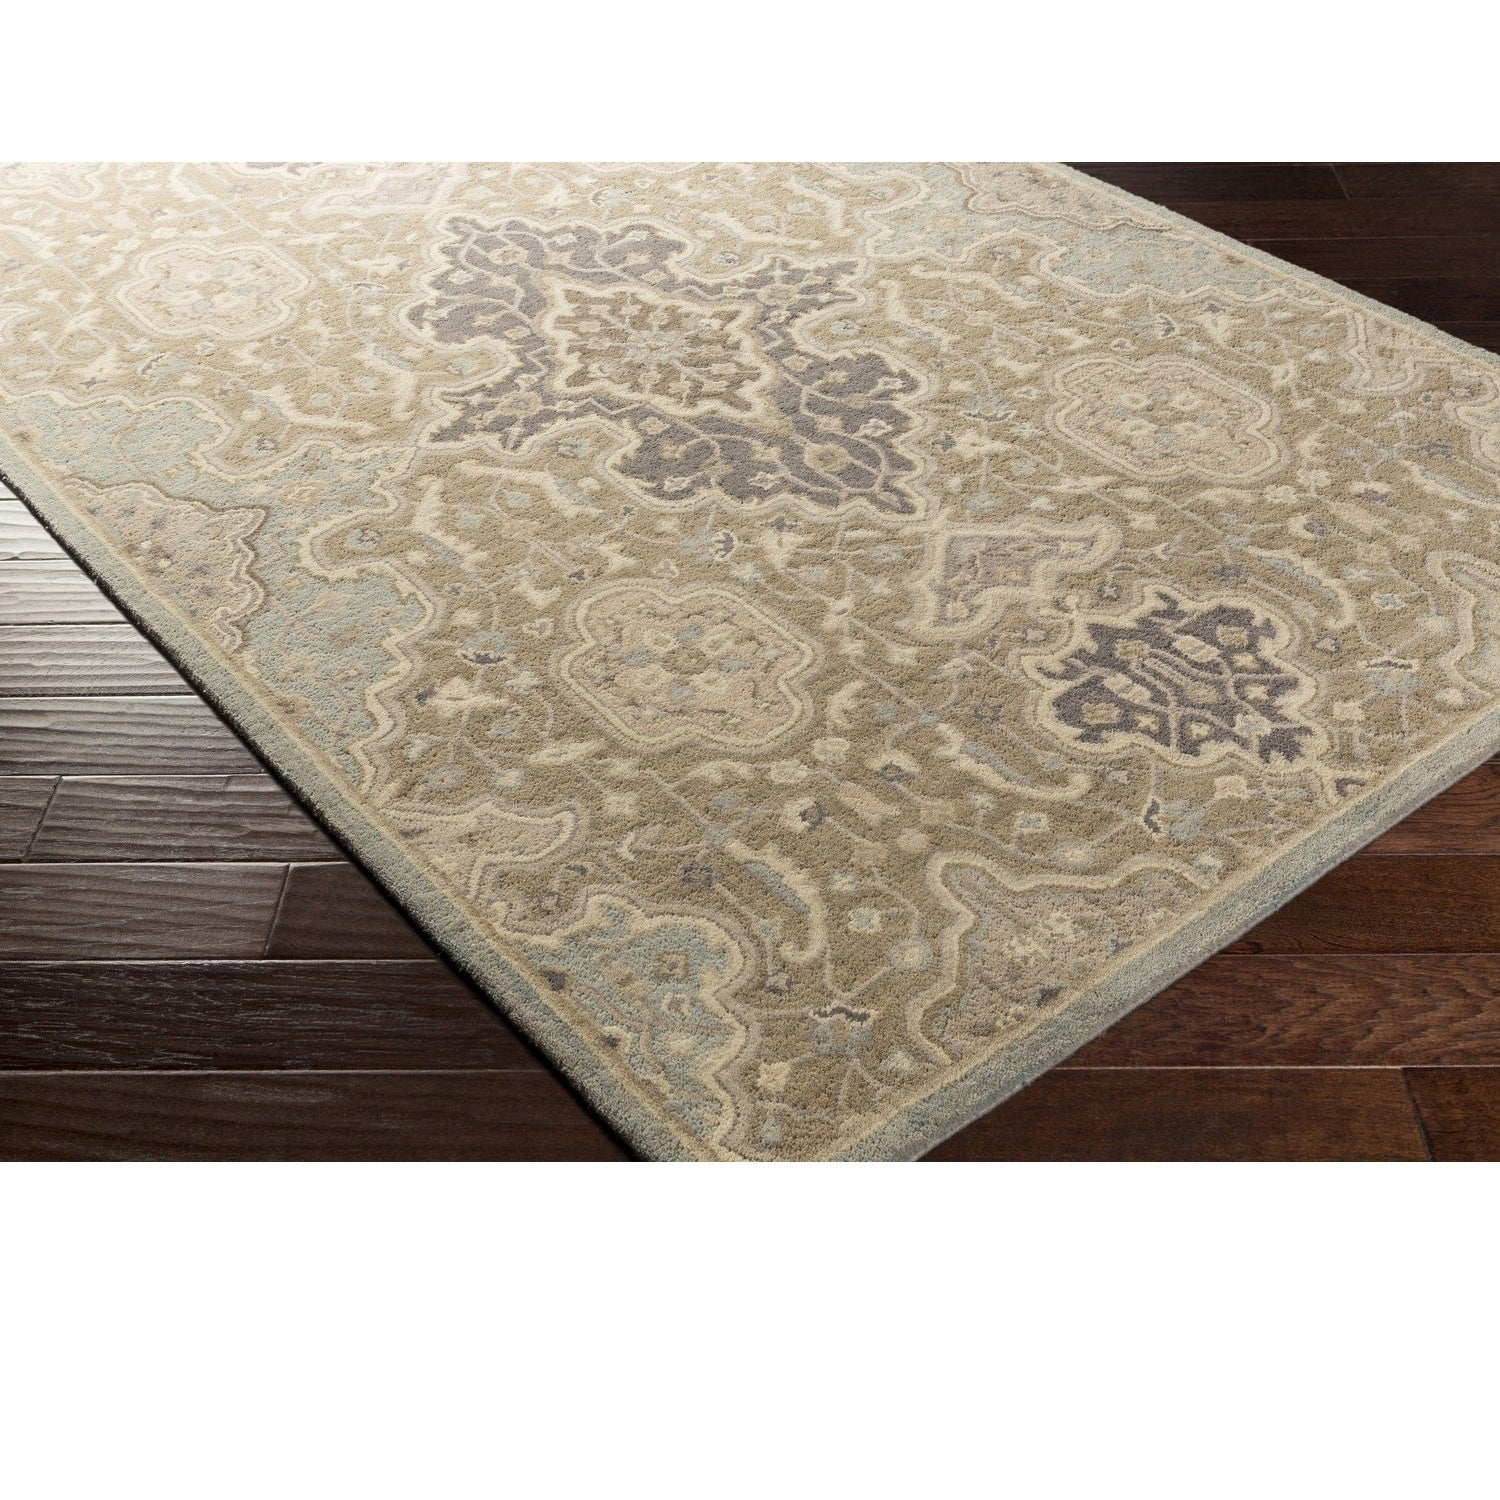 Shop Hand Tufted Stotfold Wool Area Rug 8 X 10 On Sale Free